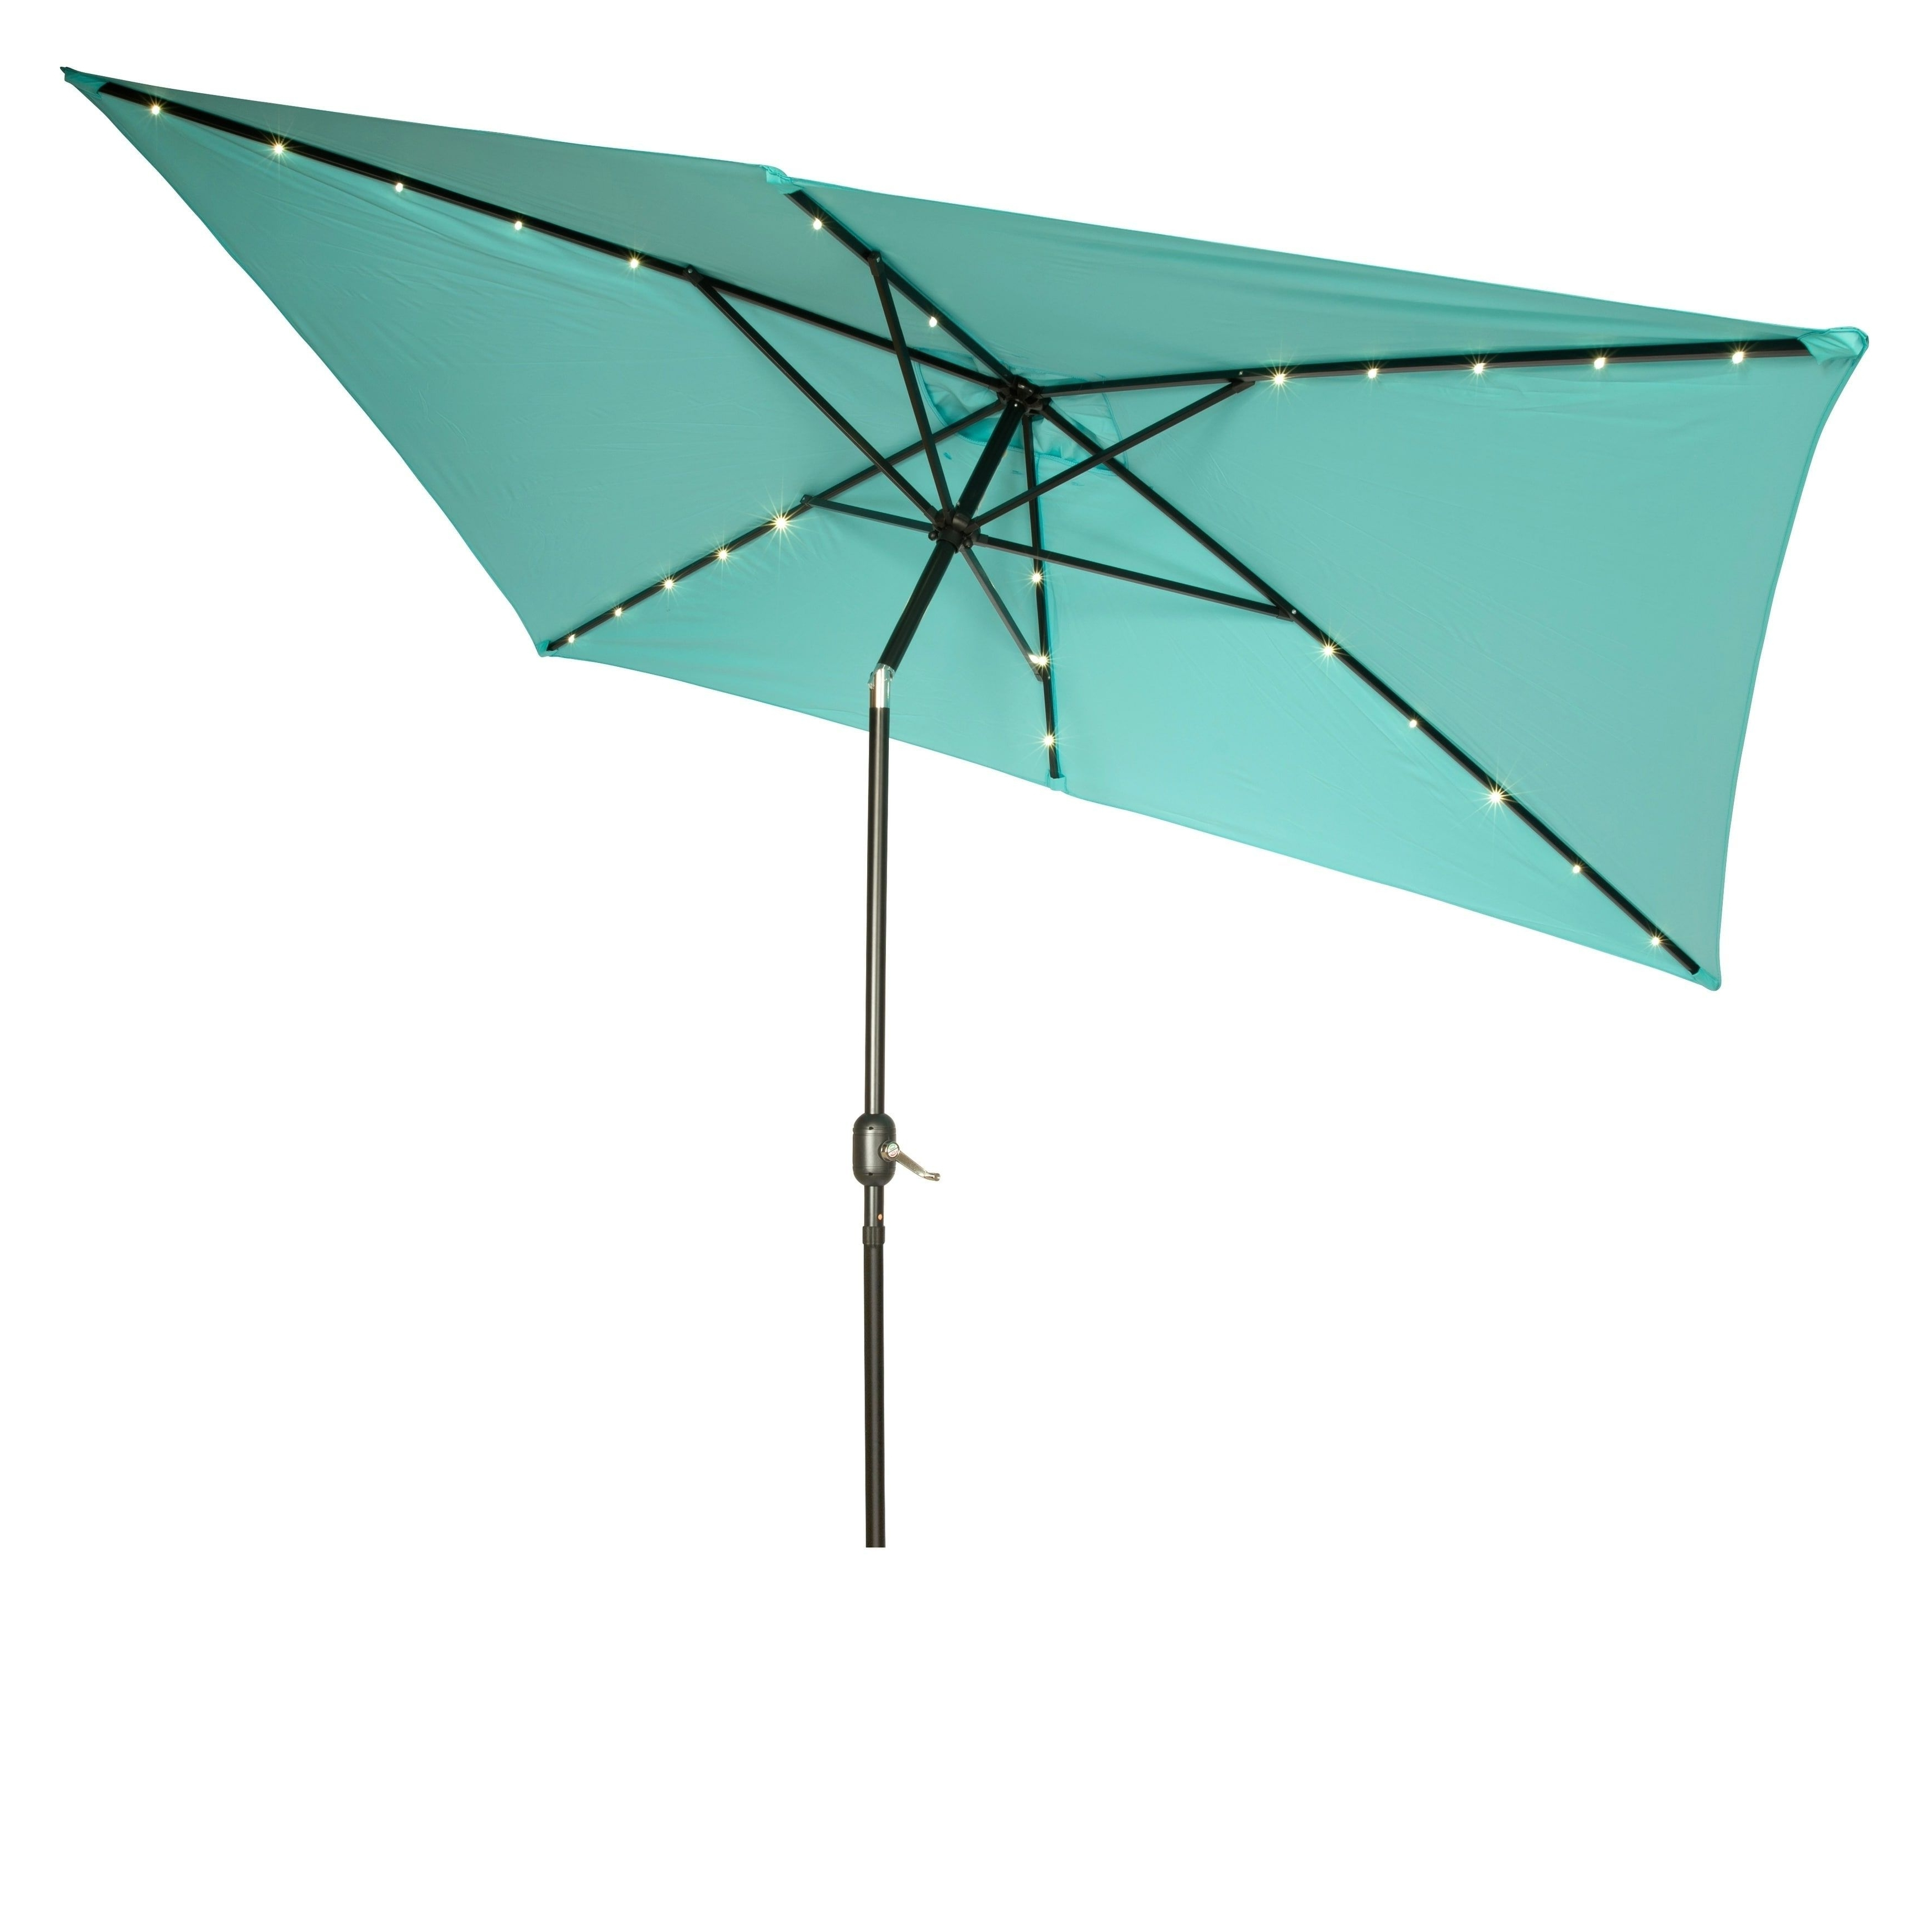 Led Patio Umbrellas With Current Rectangular Solar Powered Led Lighted Patio Umbrella – 10' X 6.5 (Gallery 15 of 20)